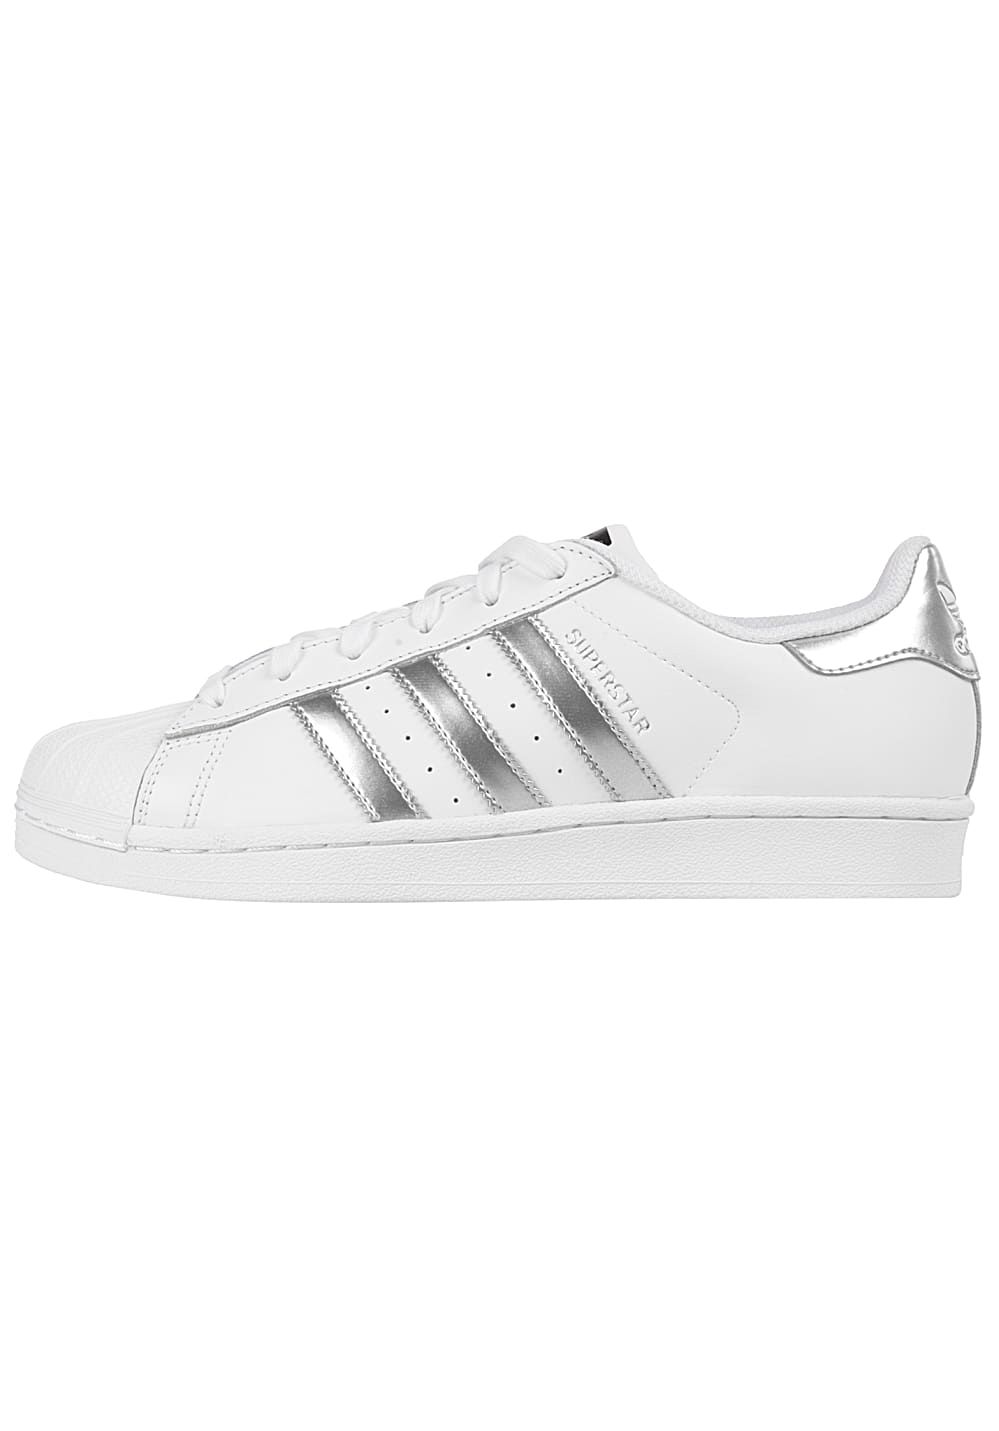 Adidas Wit Sneakers Dames